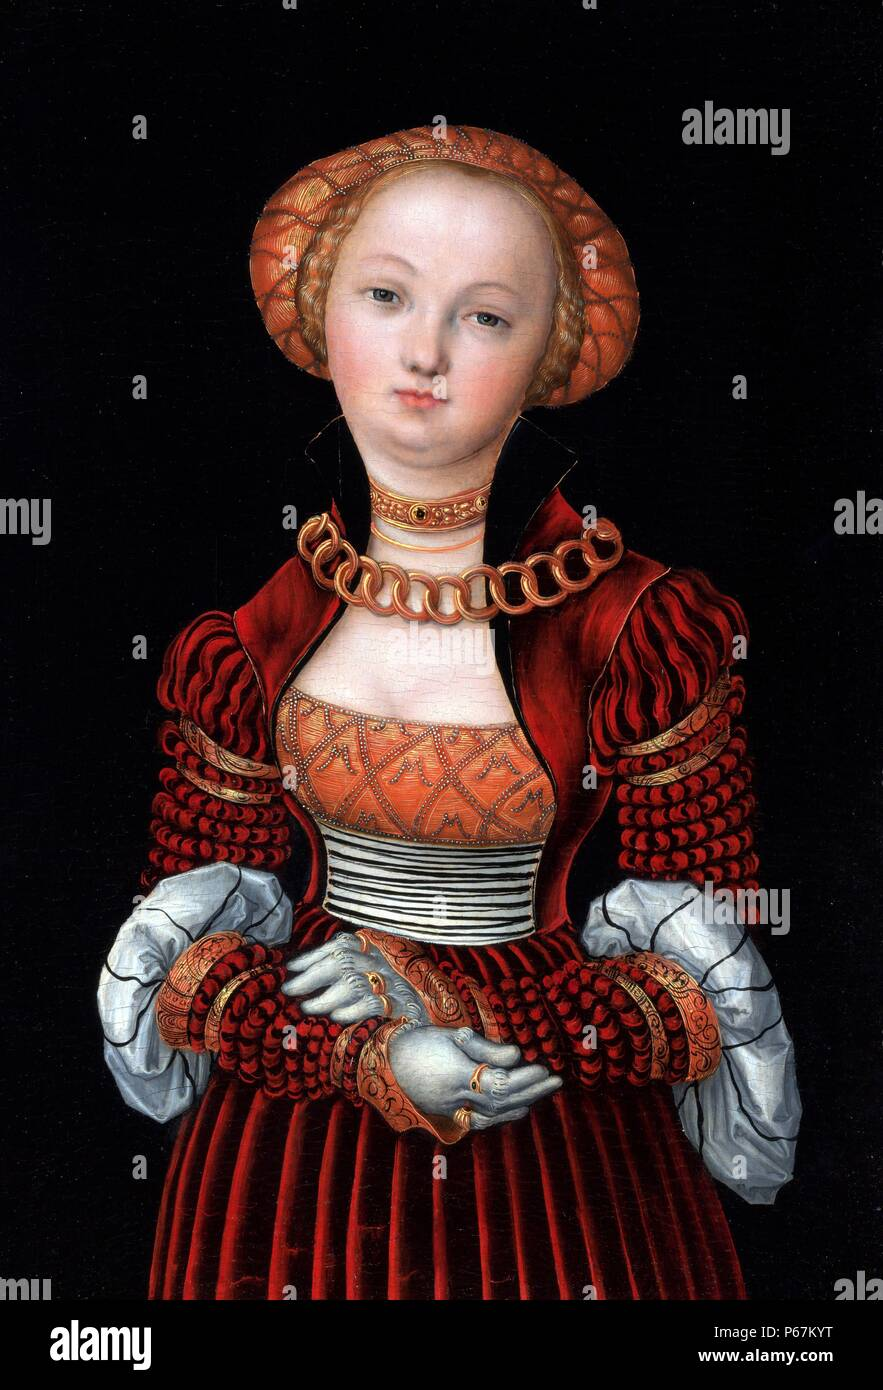 Effigy of a young woman. By Lucas Cranach the Elder (1472-1553)  German Renaissance painter and printmaker in woodcut and engraving. Dated 16th Century - Stock Image